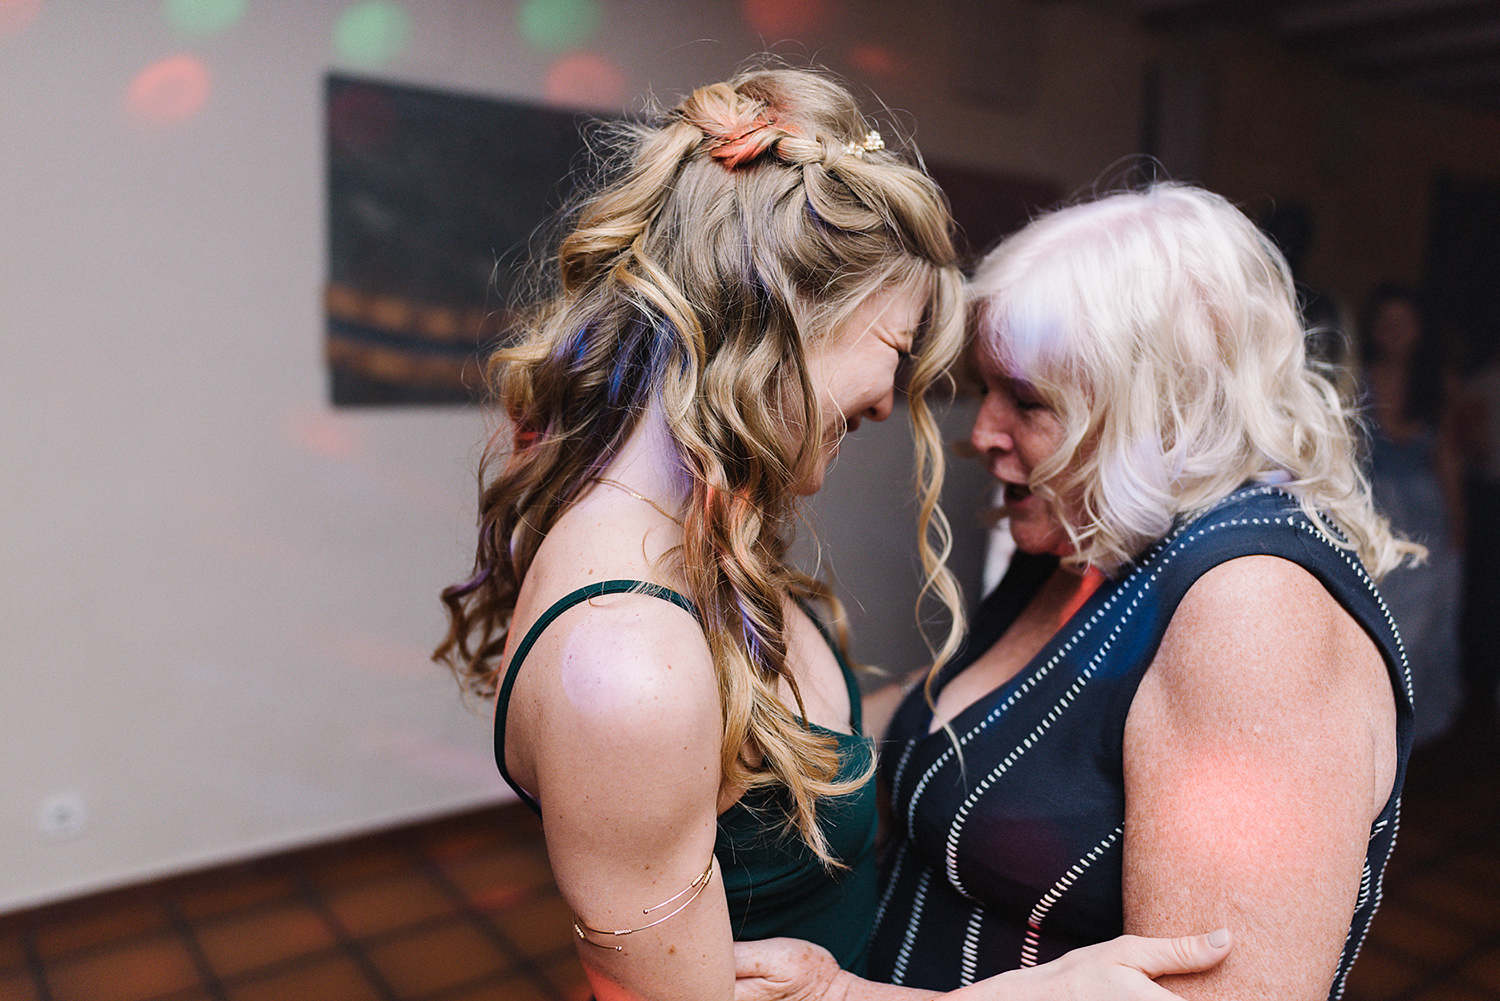 destination-wedding-photographer-from-toronto-ryanne-hollies-photography-documentary-editorial-style-toronto-wedding-photographer-junebug-weddings-reception-partying-wedding-guests-dancing-real-moments.jpg